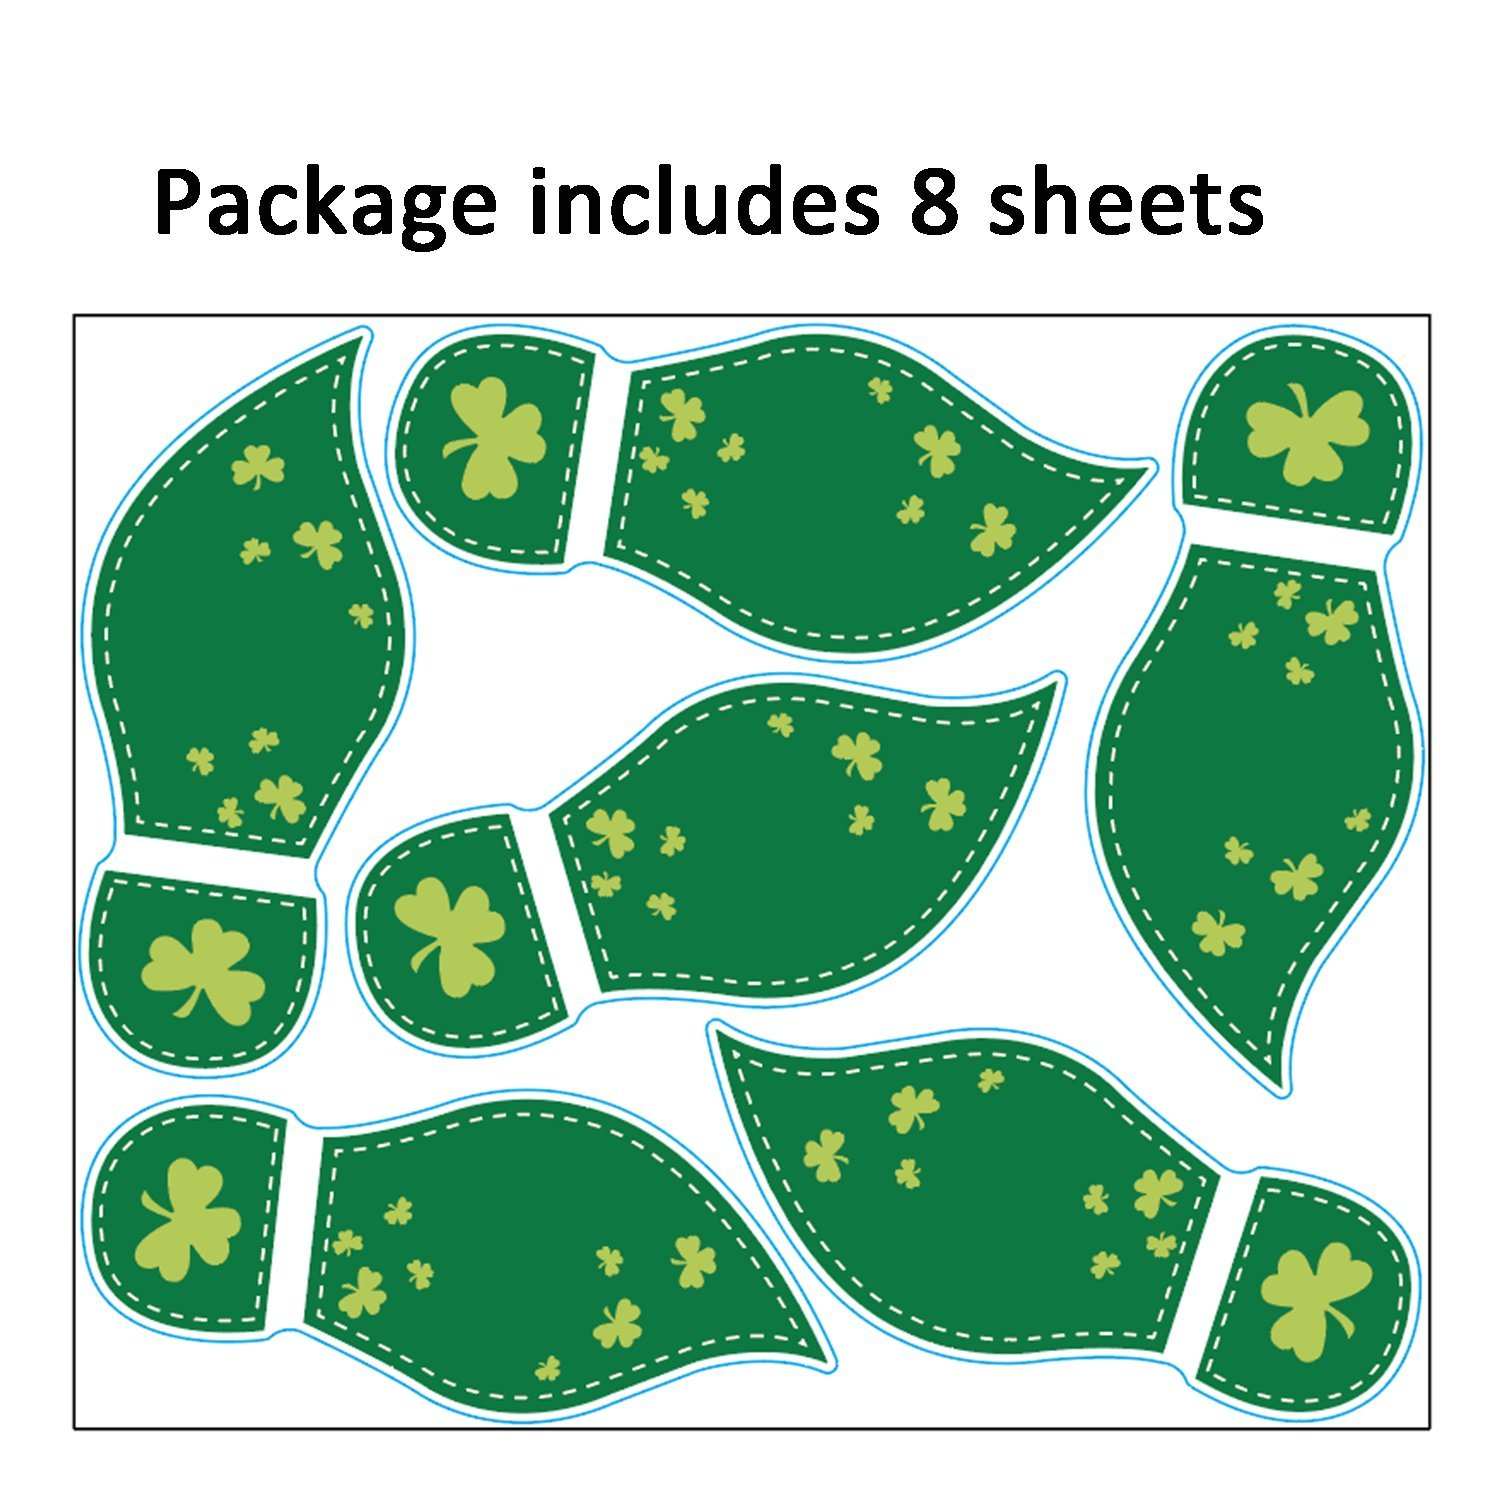 graphic about Leprechaun Feet Printable identify jollylife 48Ct St. Patricks Working day Decorations Leprechaun Footprints Ground Clings- Shamrock Get together Decorations Decals Stickers